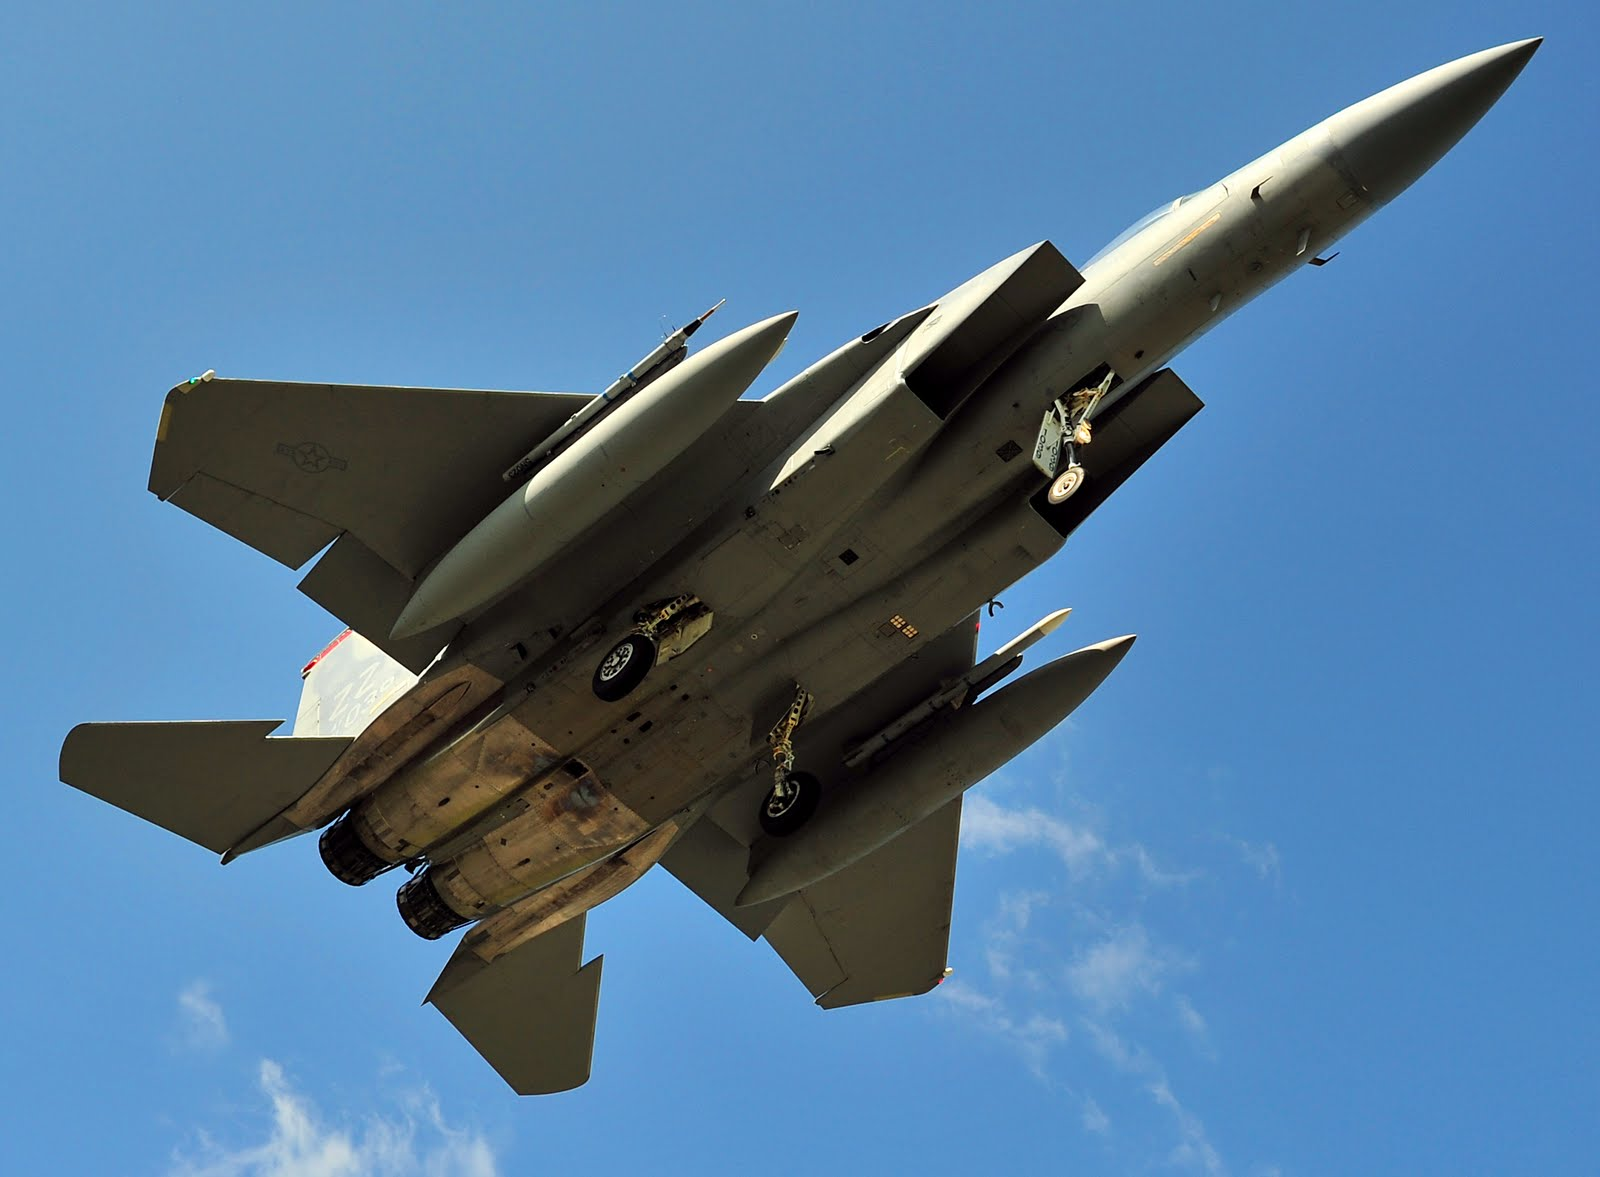 NationStates • View topic - Your Nation's Air Force [MKI]